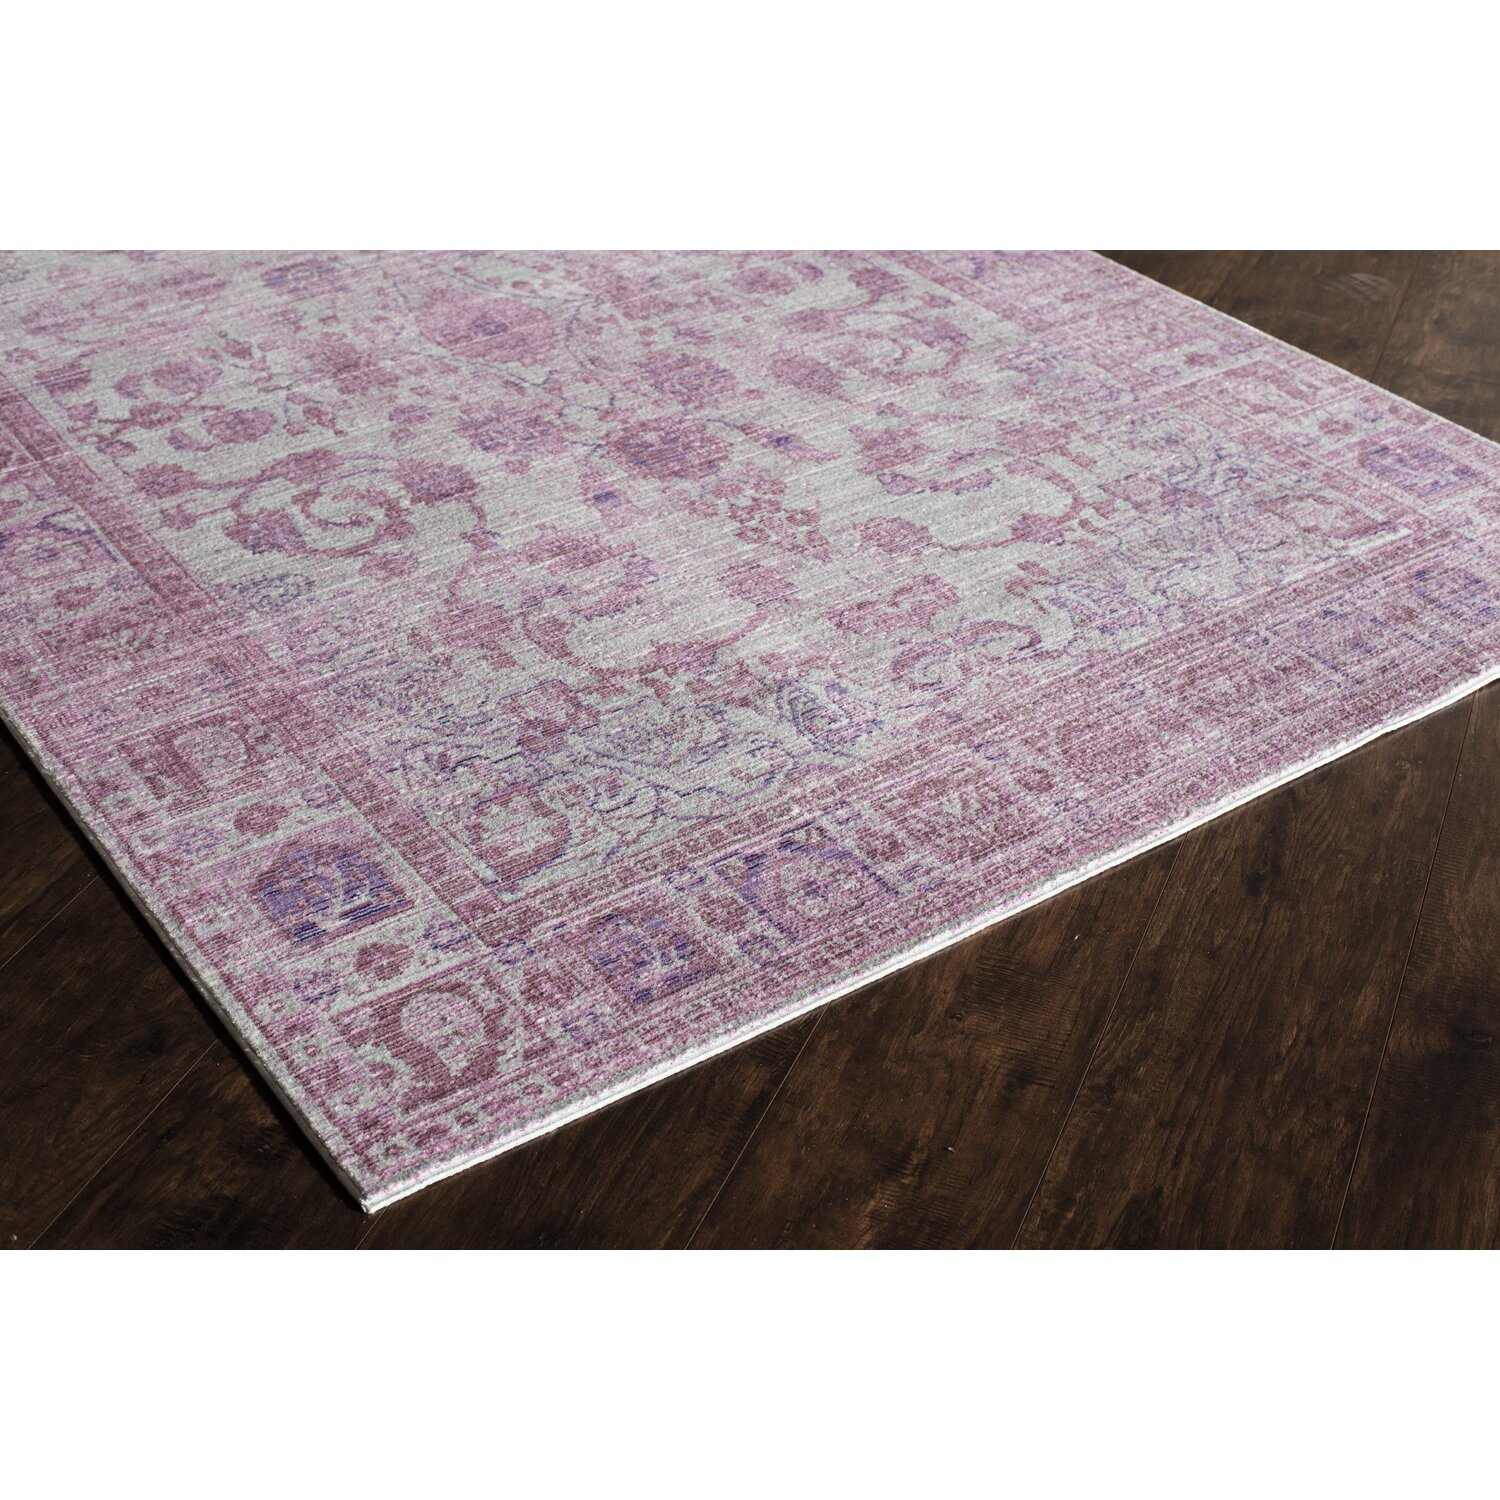 Rugs america asteria lavender area rug reviews wayfair for Where can i buy area rugs